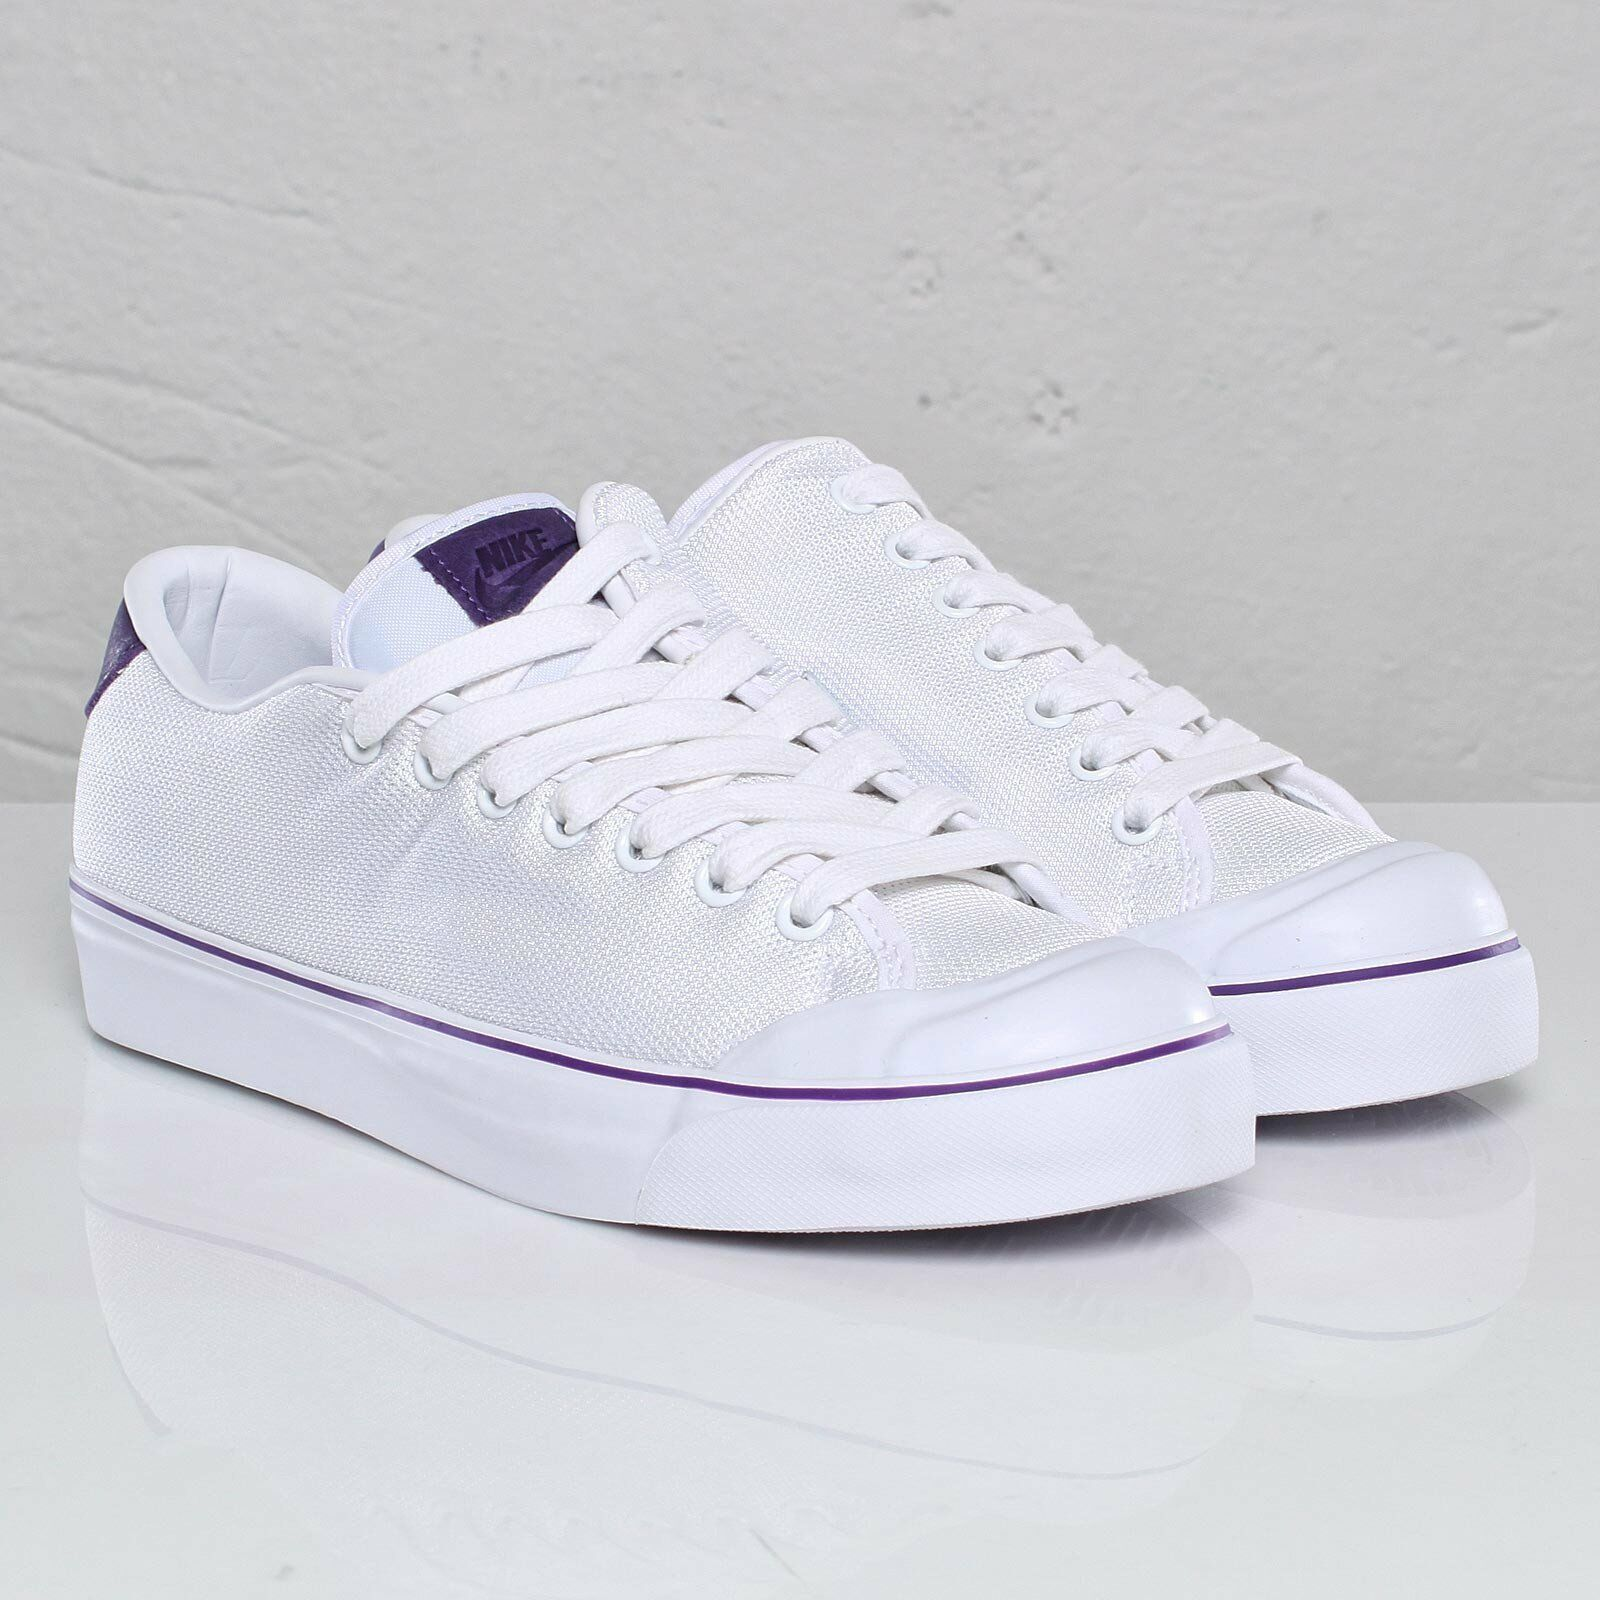 Nike White/Purple ALL COURT TWIST Neu Gr:46 US:12 White/Purple Nike Sommer Sneaker Capri flash c535a6